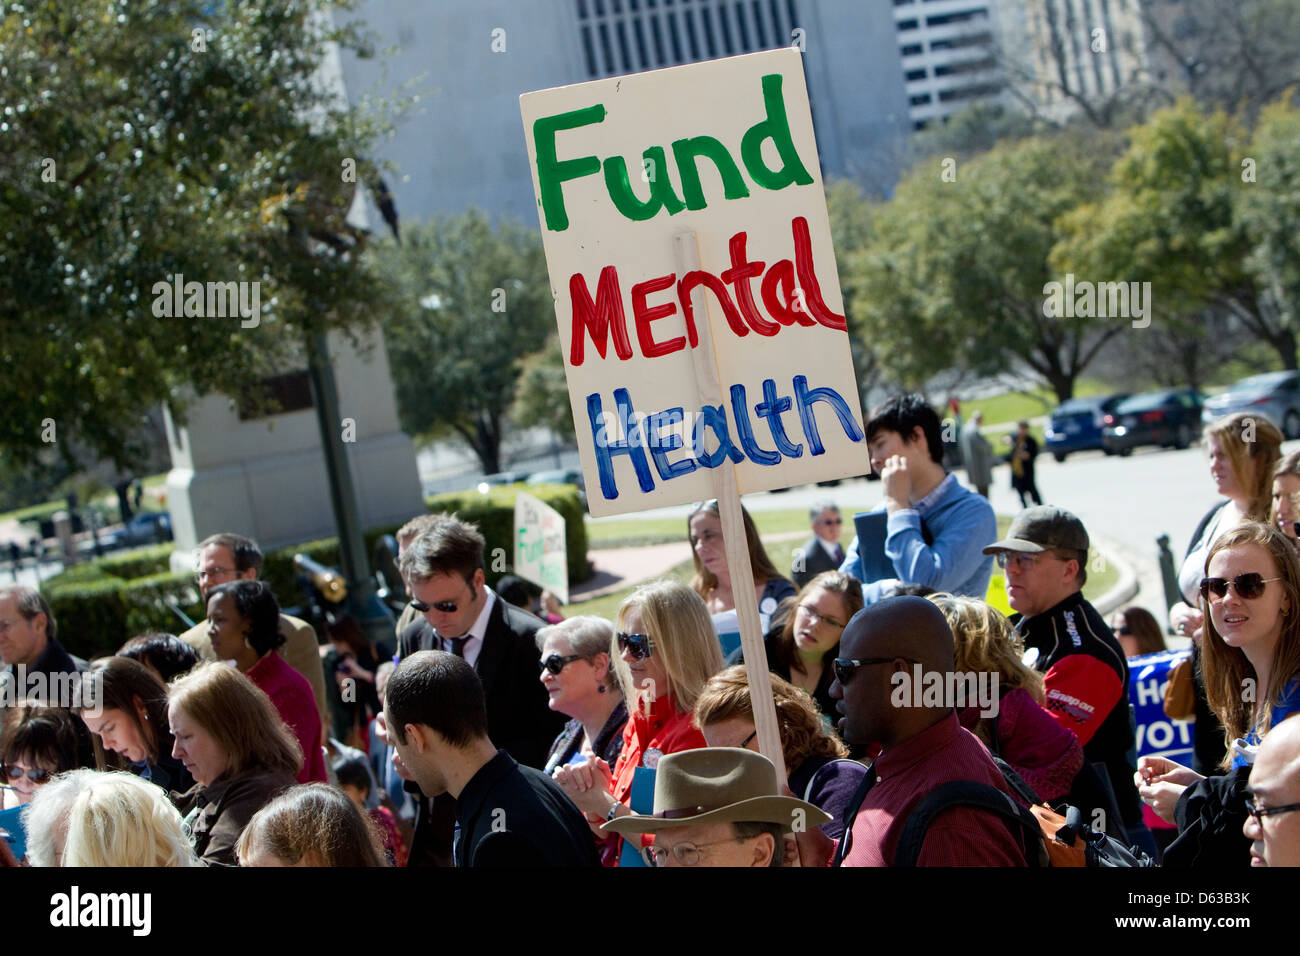 Citizens attend rally and hold up signs asking the Texas legislature for additional funding for mental health services - Stock Image